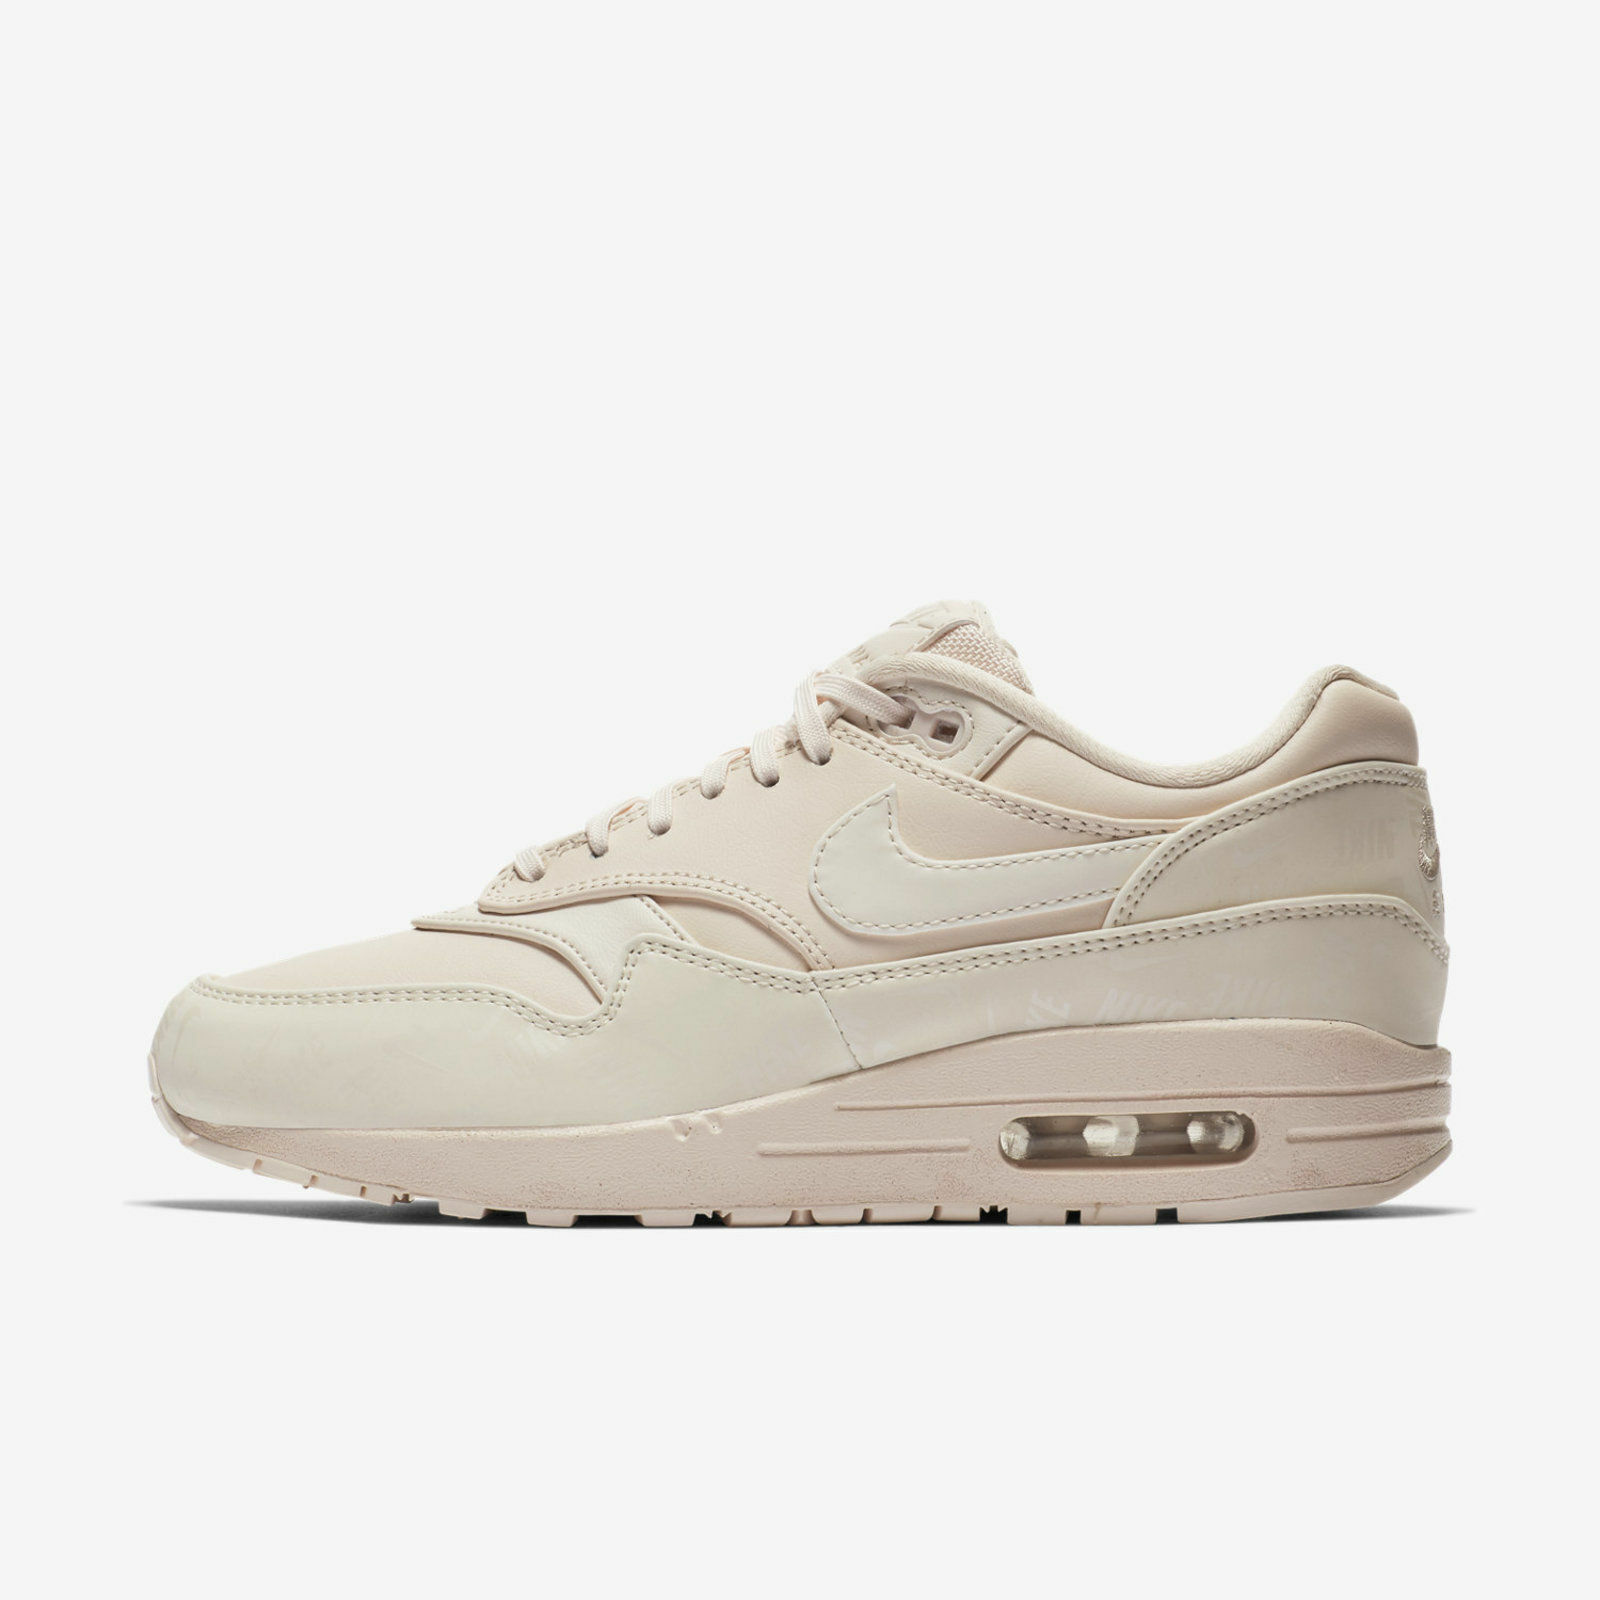 NIKE WOMEN'S AIR MAX 1 LX SHOES guava ice 917691 801 MSRP $130